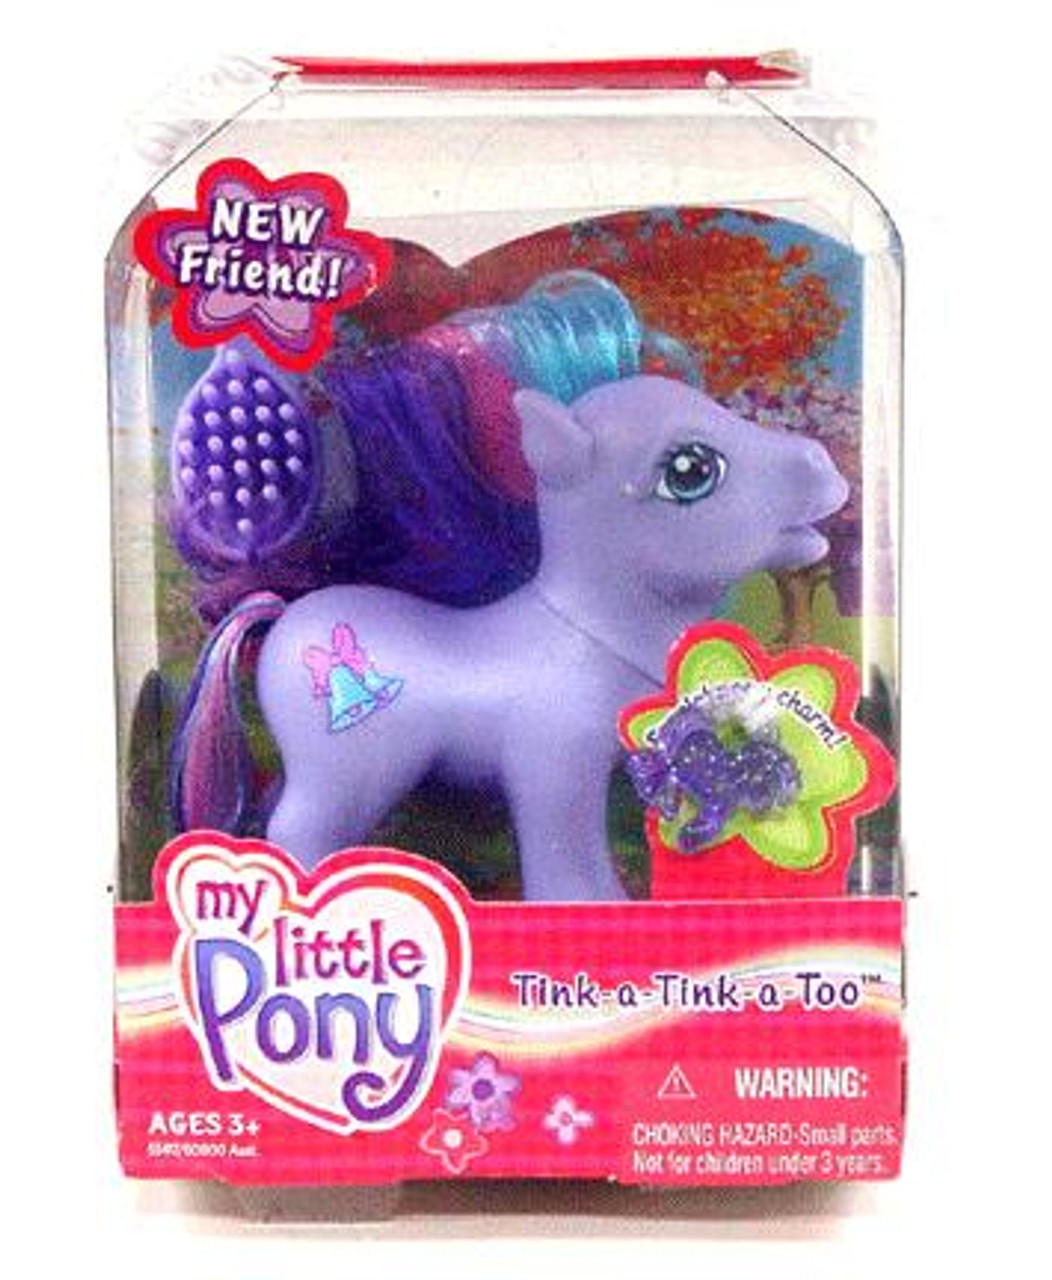 My Little Pony Classic Tink-a-Tink-a-Too Figure